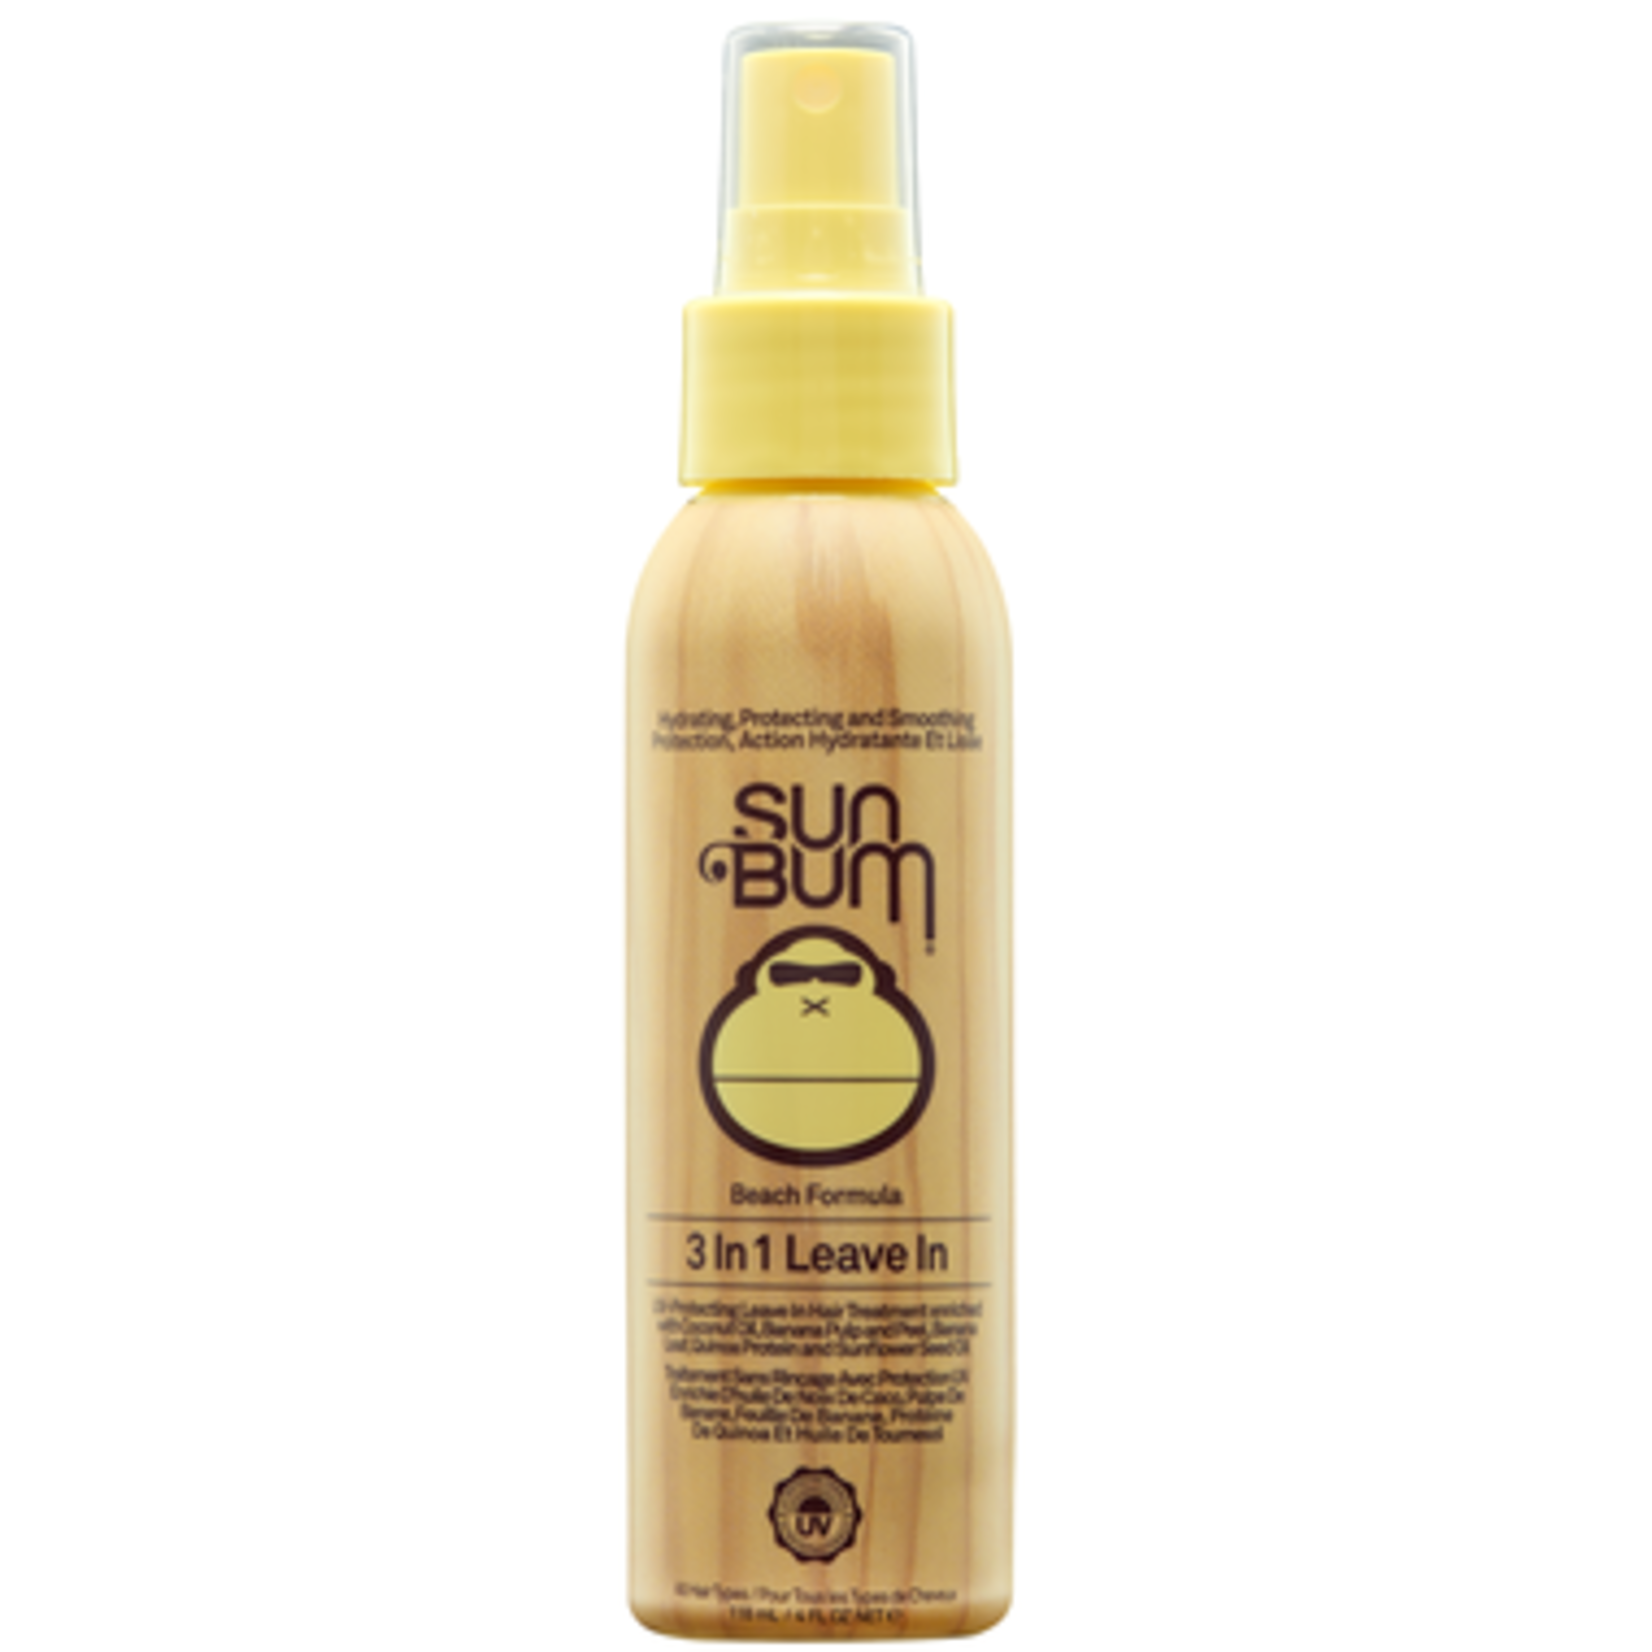 Sun Bum Sun Bum 3-in-1 Leave In Spray